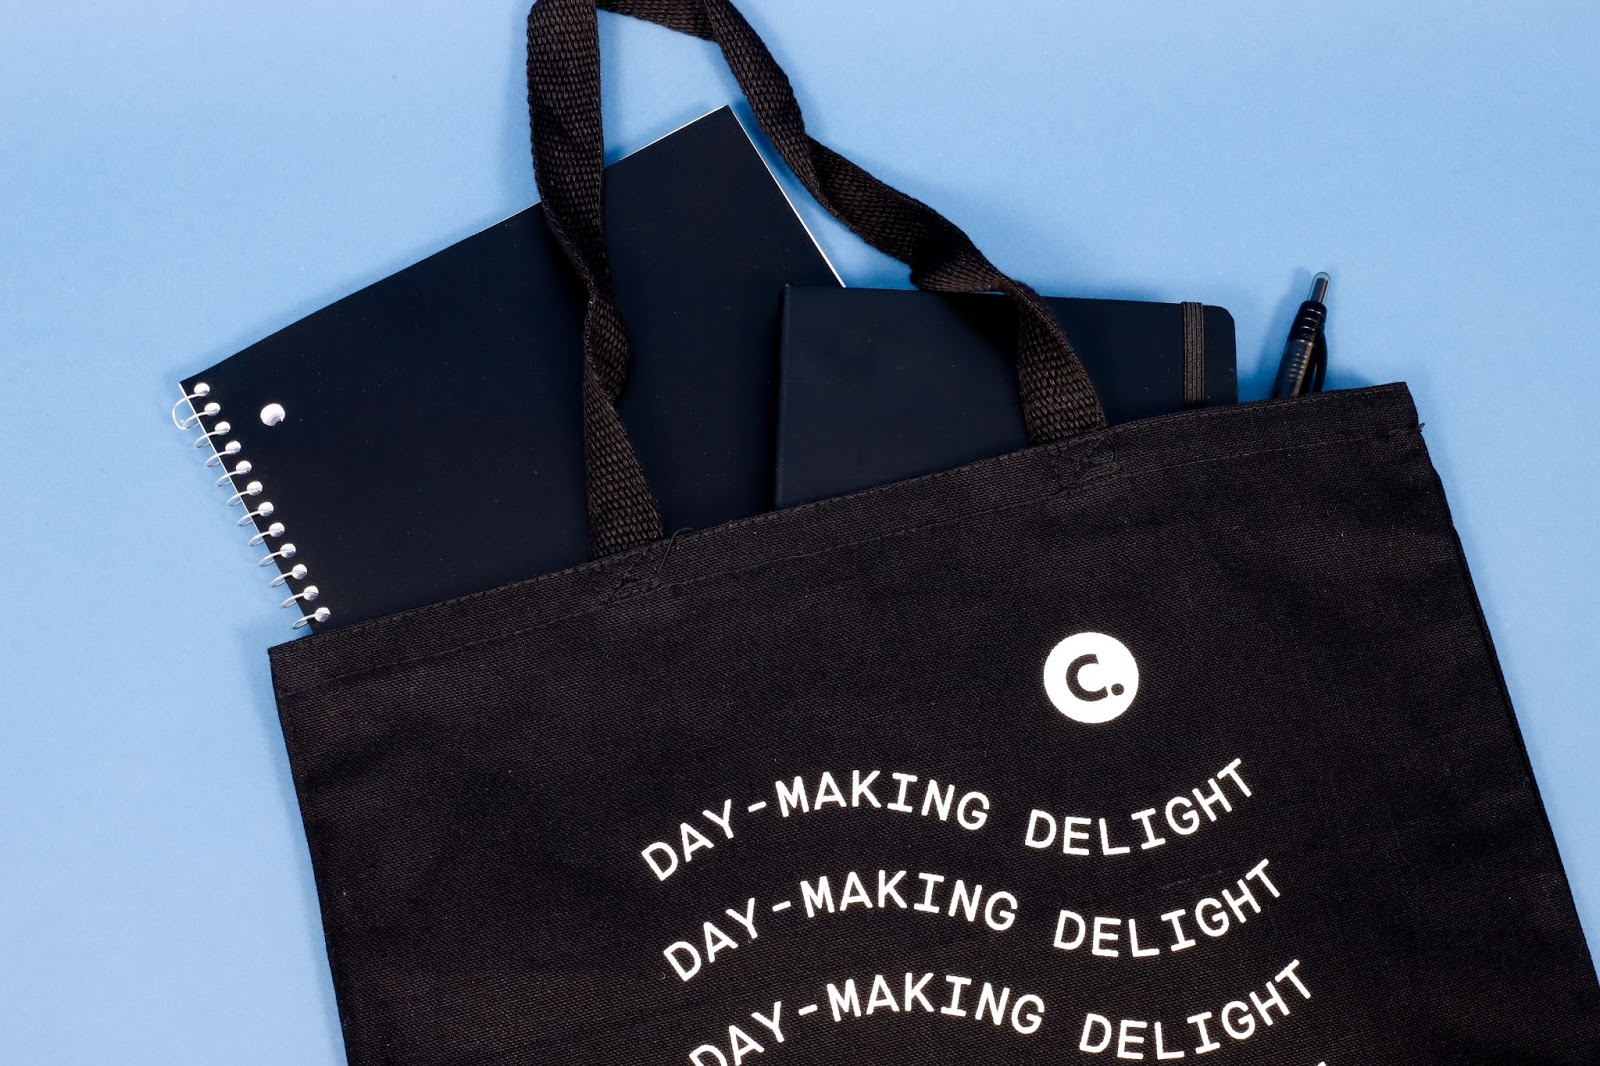 Corkcicle Black Custom Tote Bag Filled with Two Notebooks and a Pen